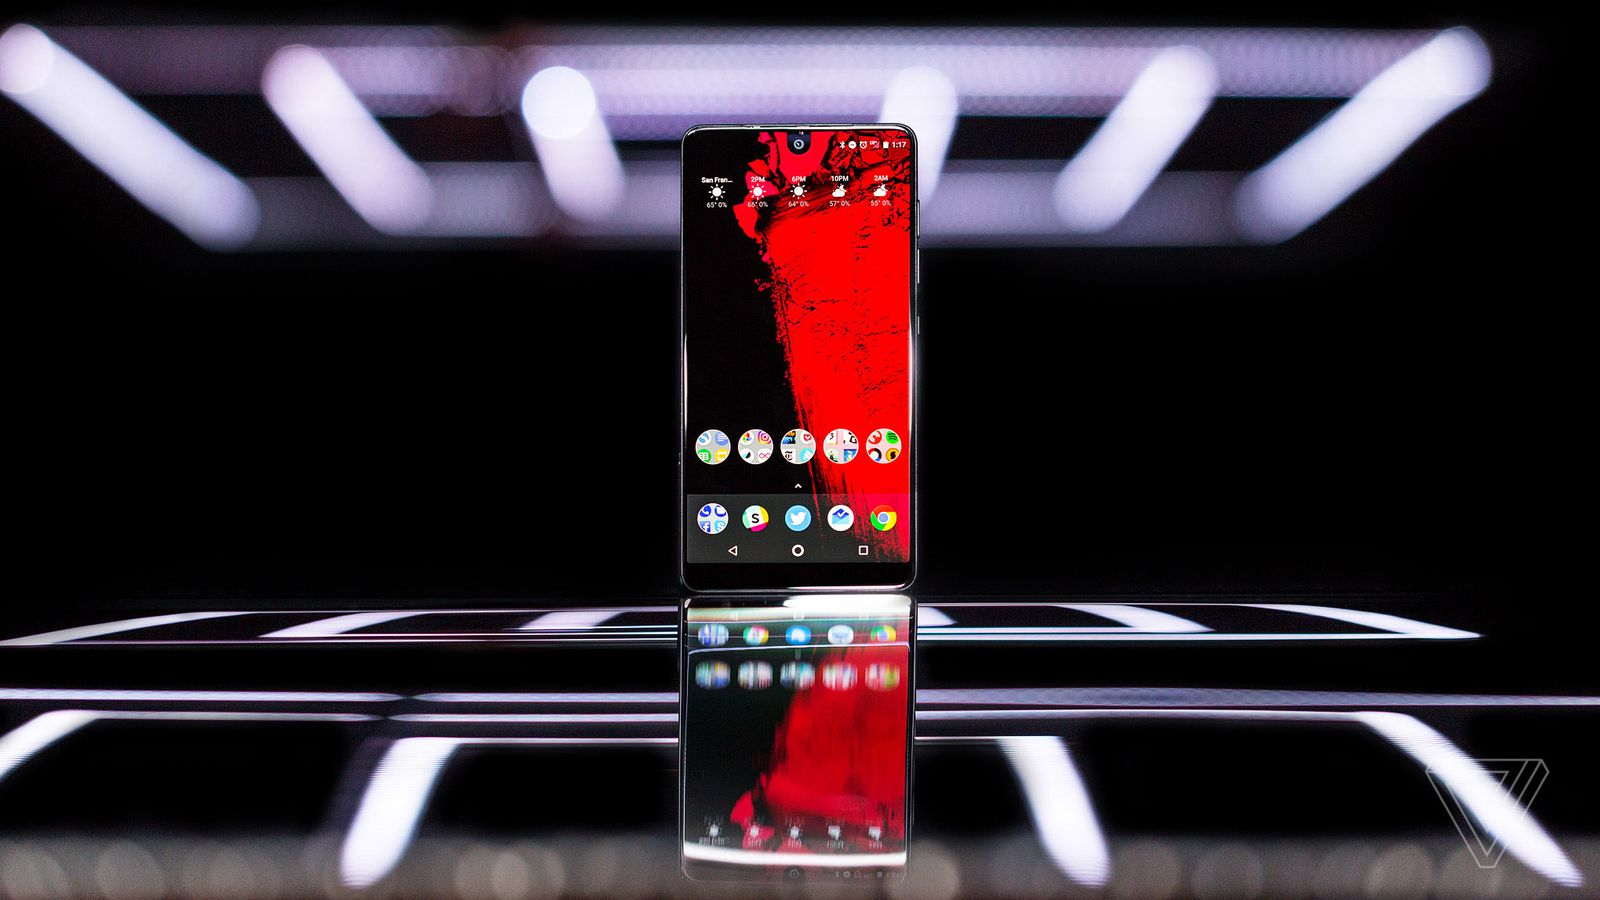 theverge.com - Essential Phone review: a beautiful work in progress